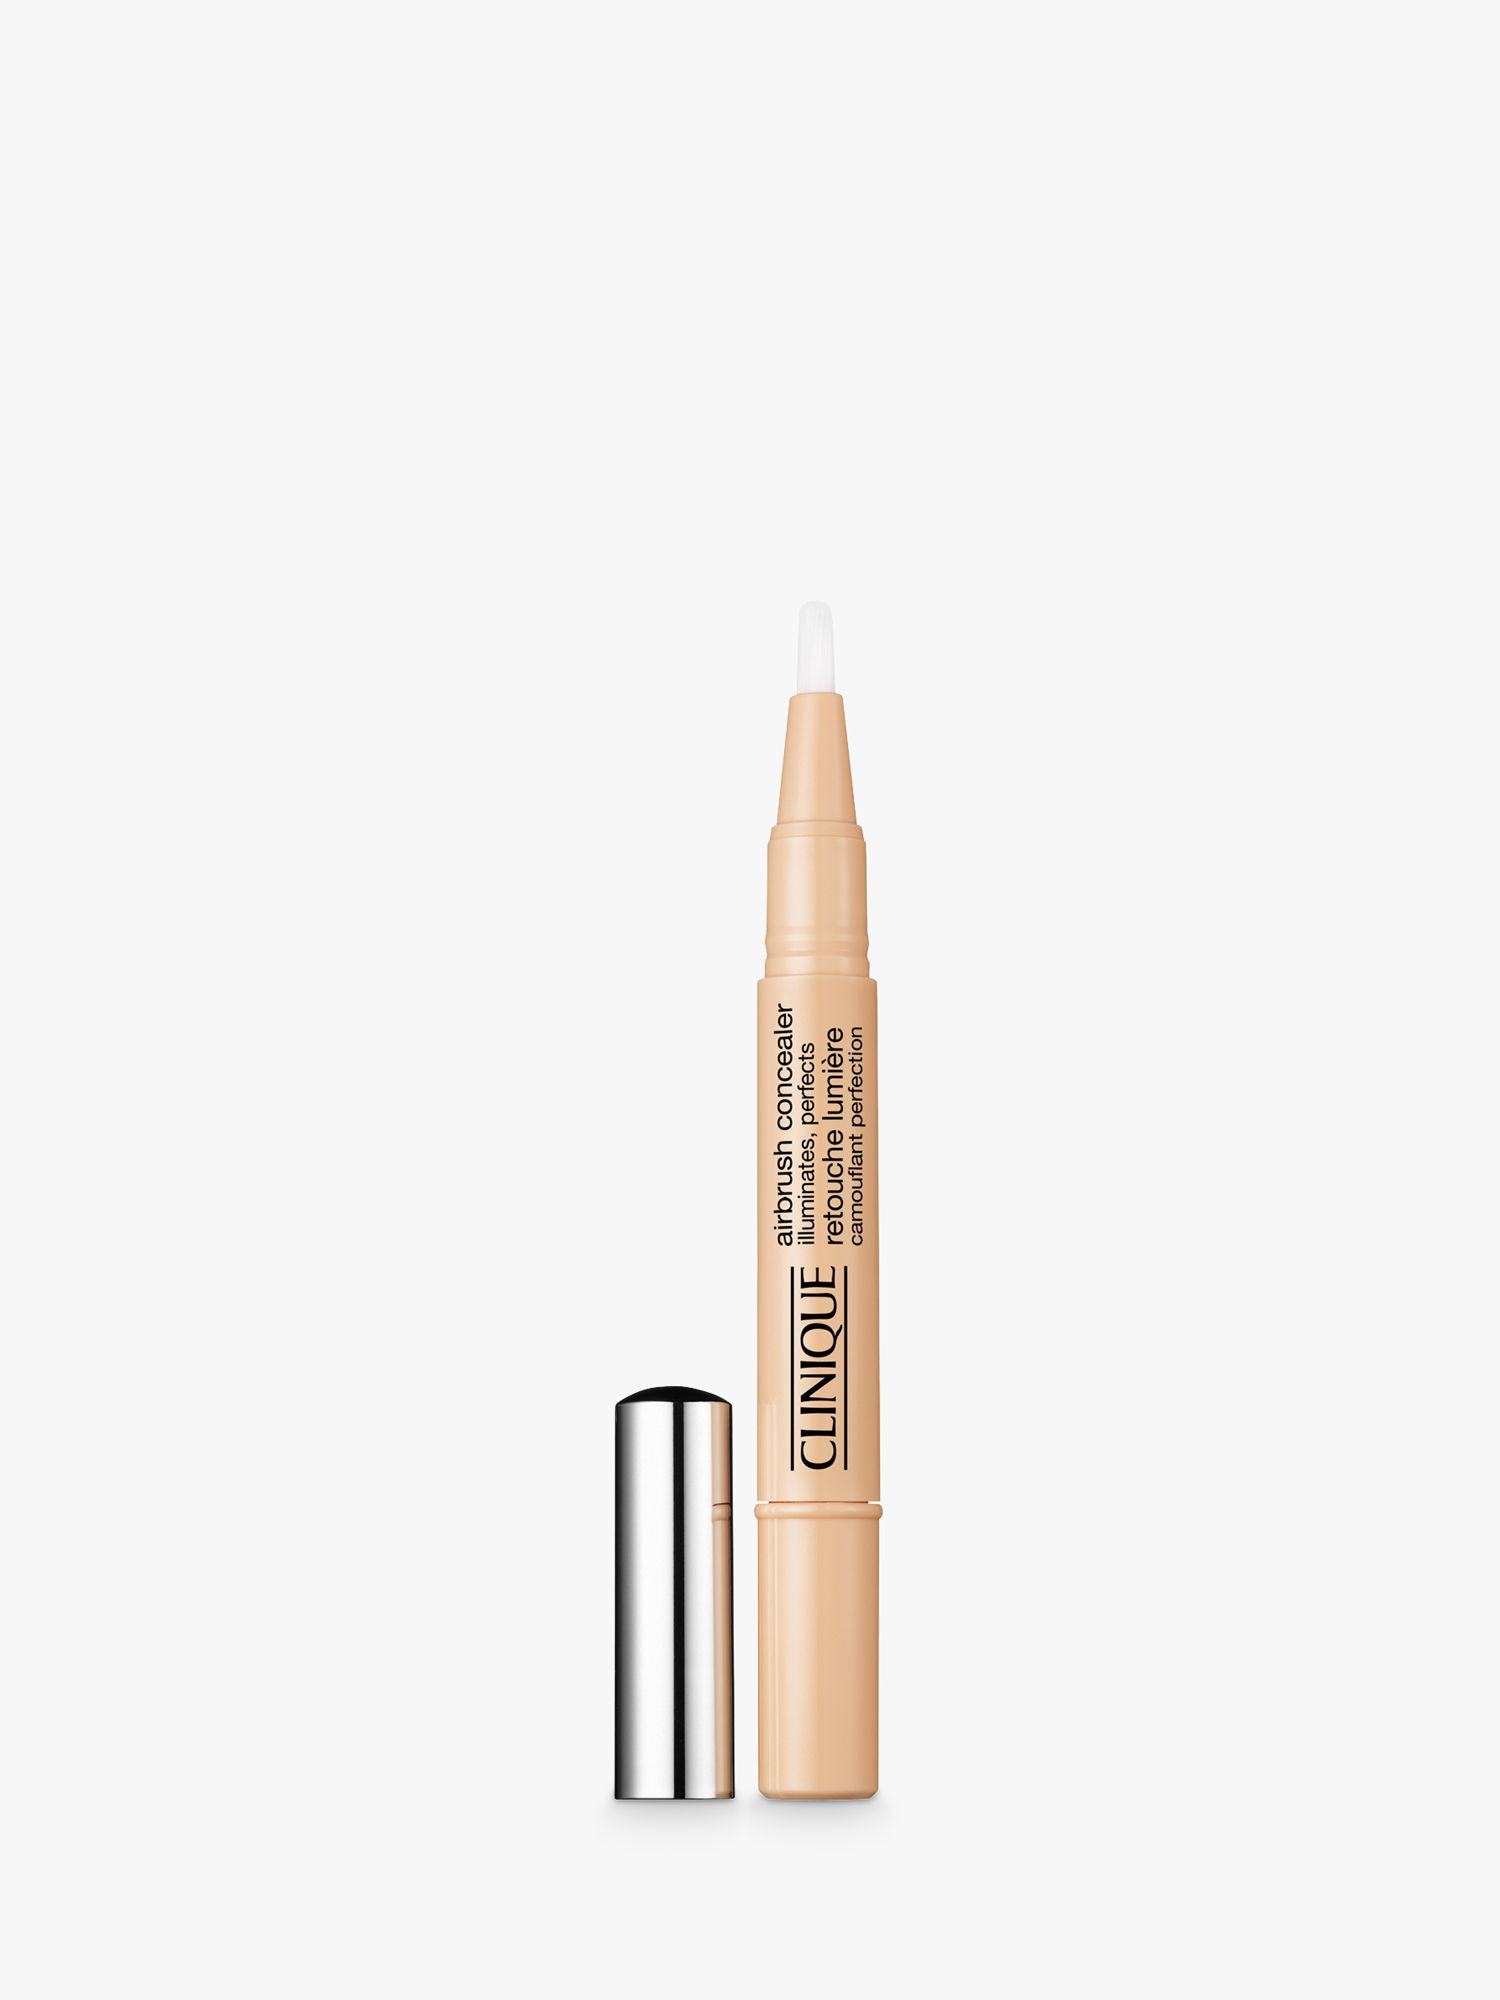 Buy Clinique Airbrush Concealer - All Skin Types, 1.5ml, Caramel Online at johnlewis.com